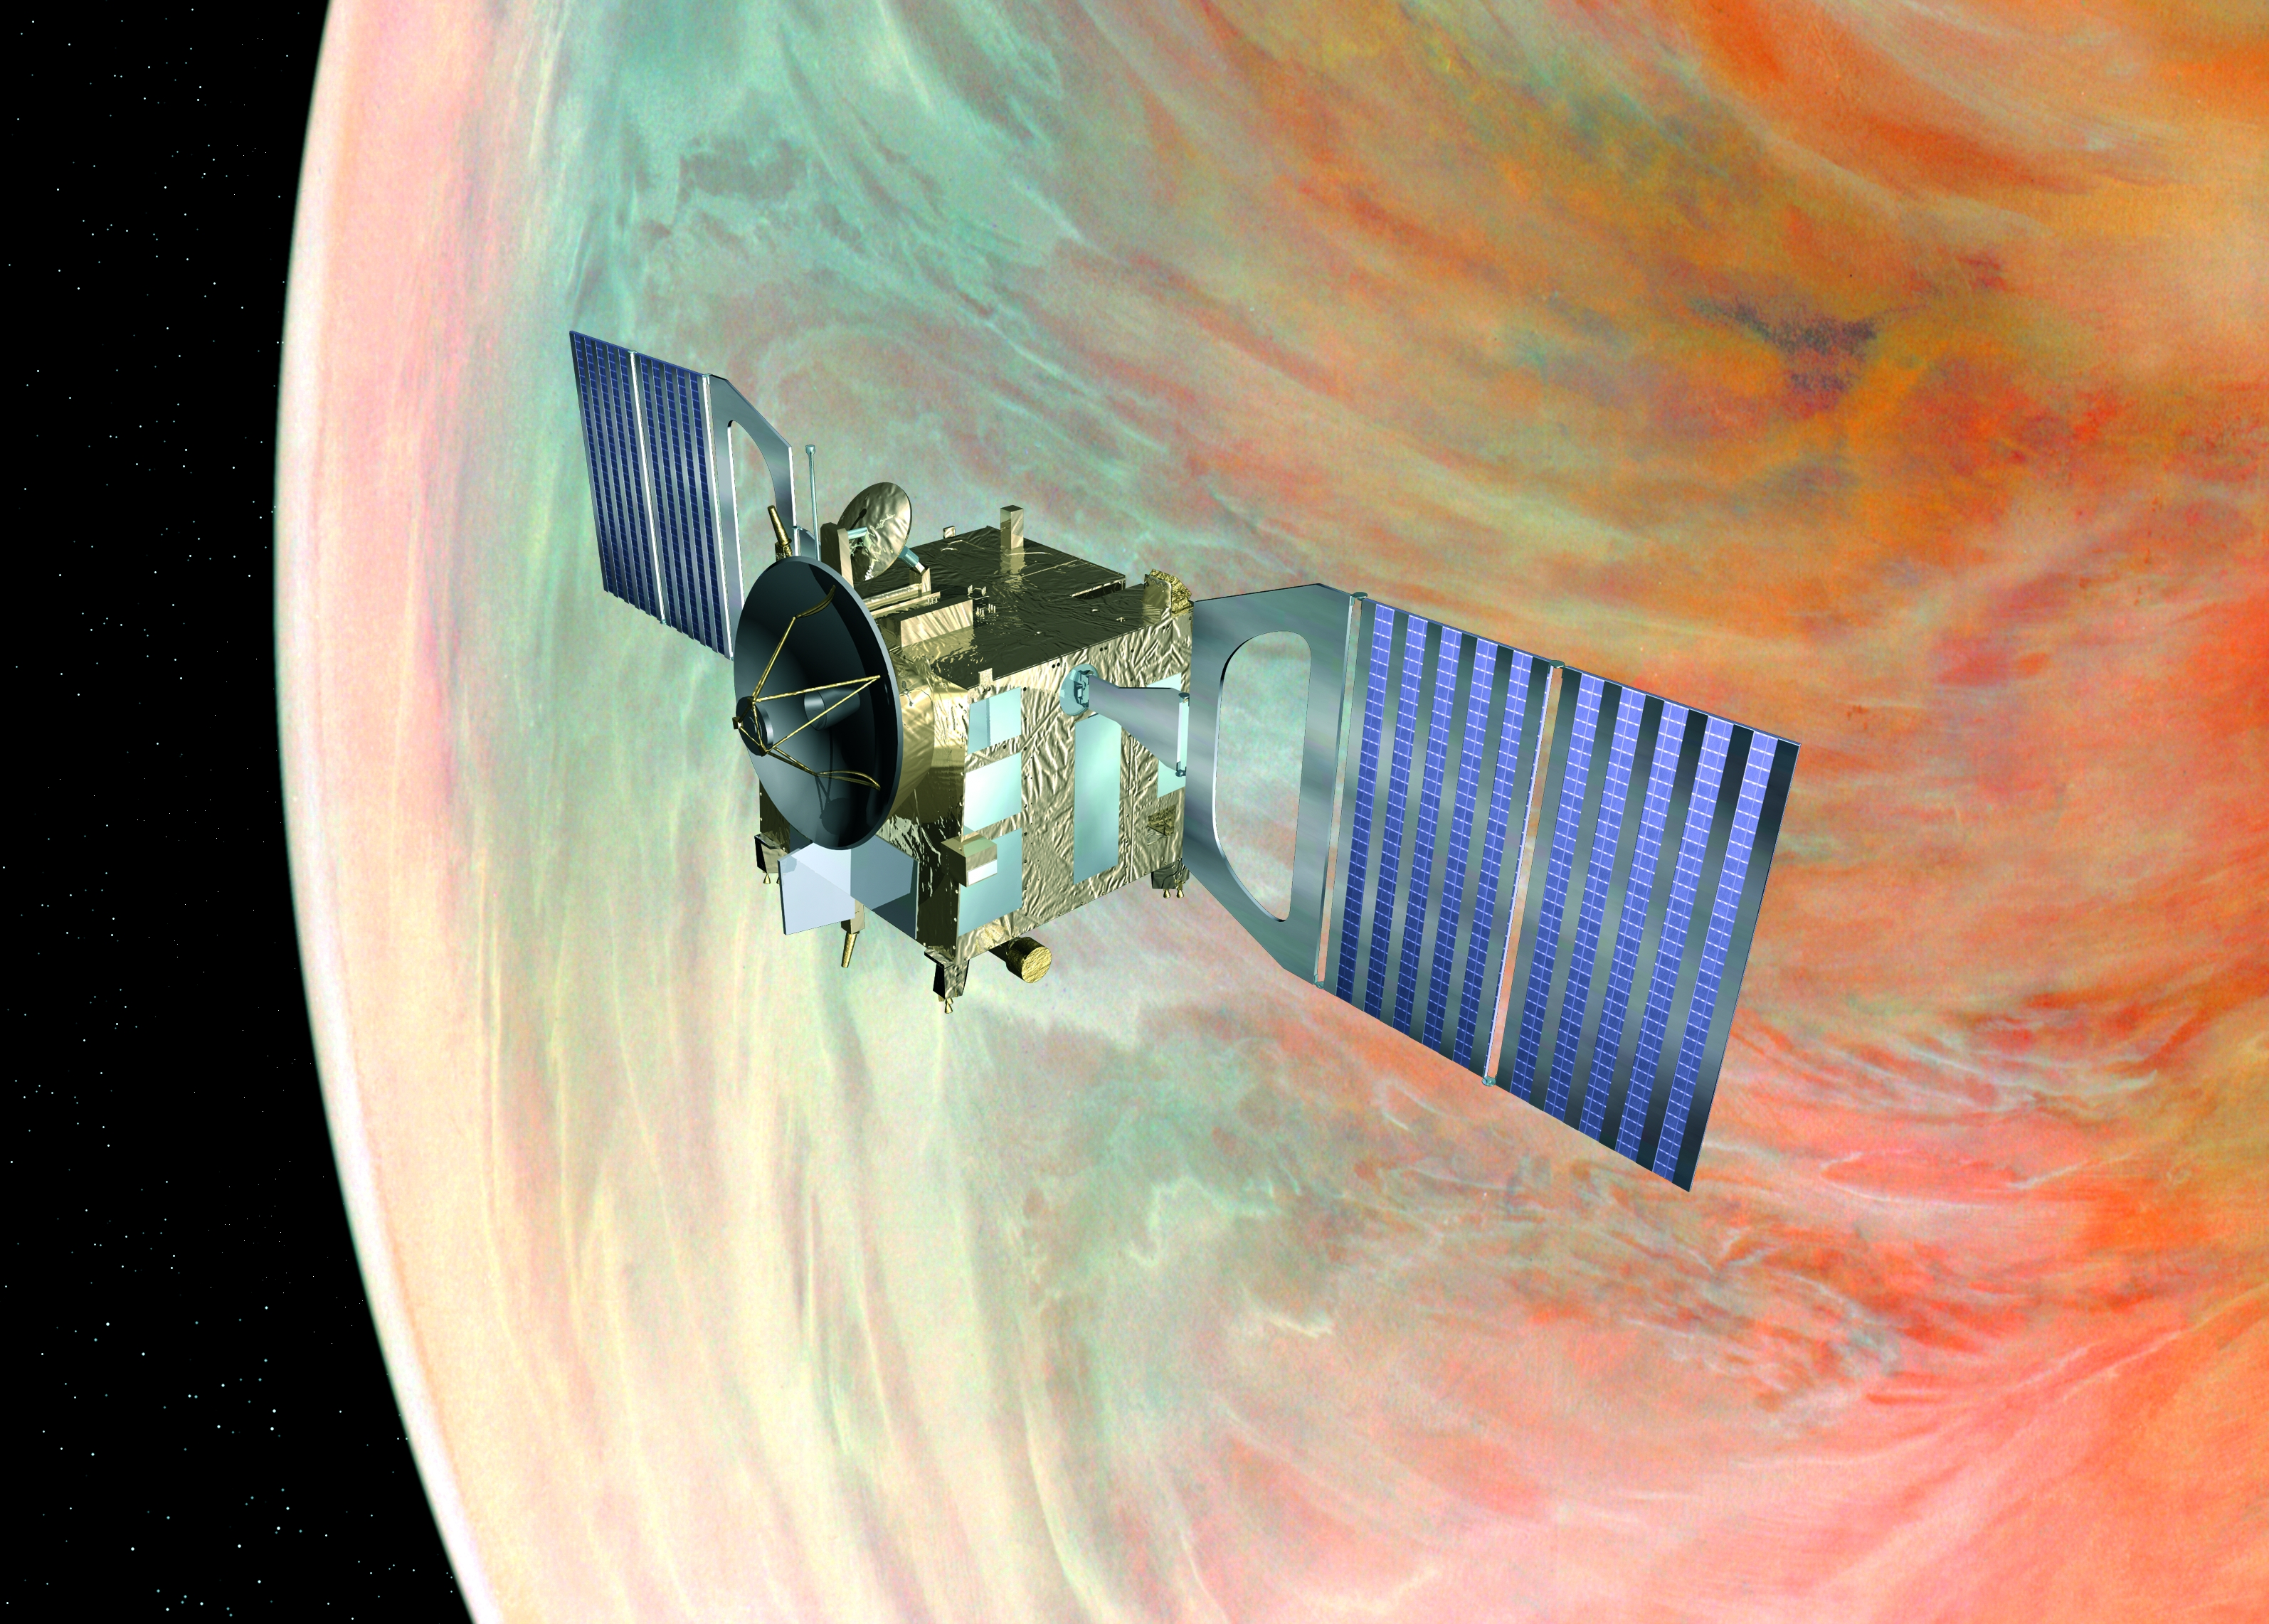 esa venus express spacecraft - photo #14